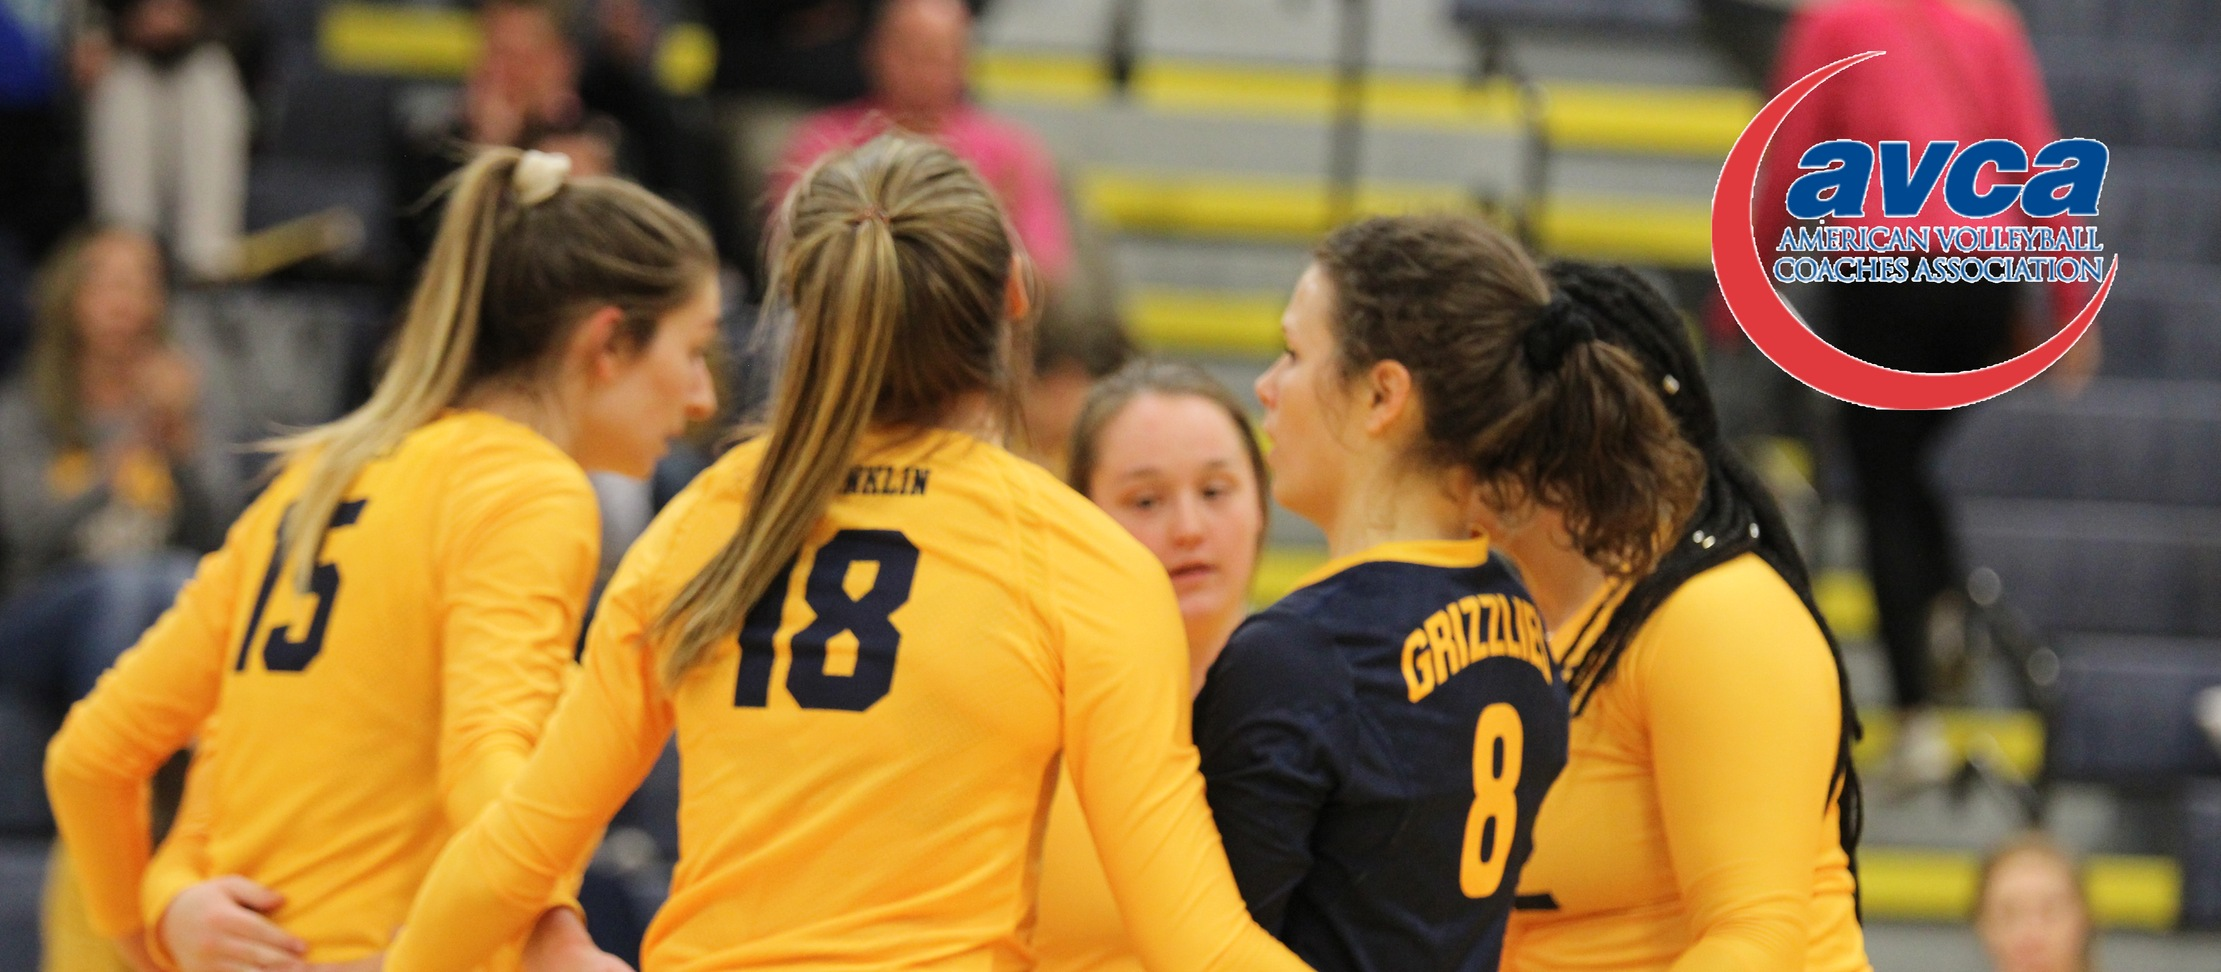 Grizzlies Collect AVCA Team Academic Award for 2018-19